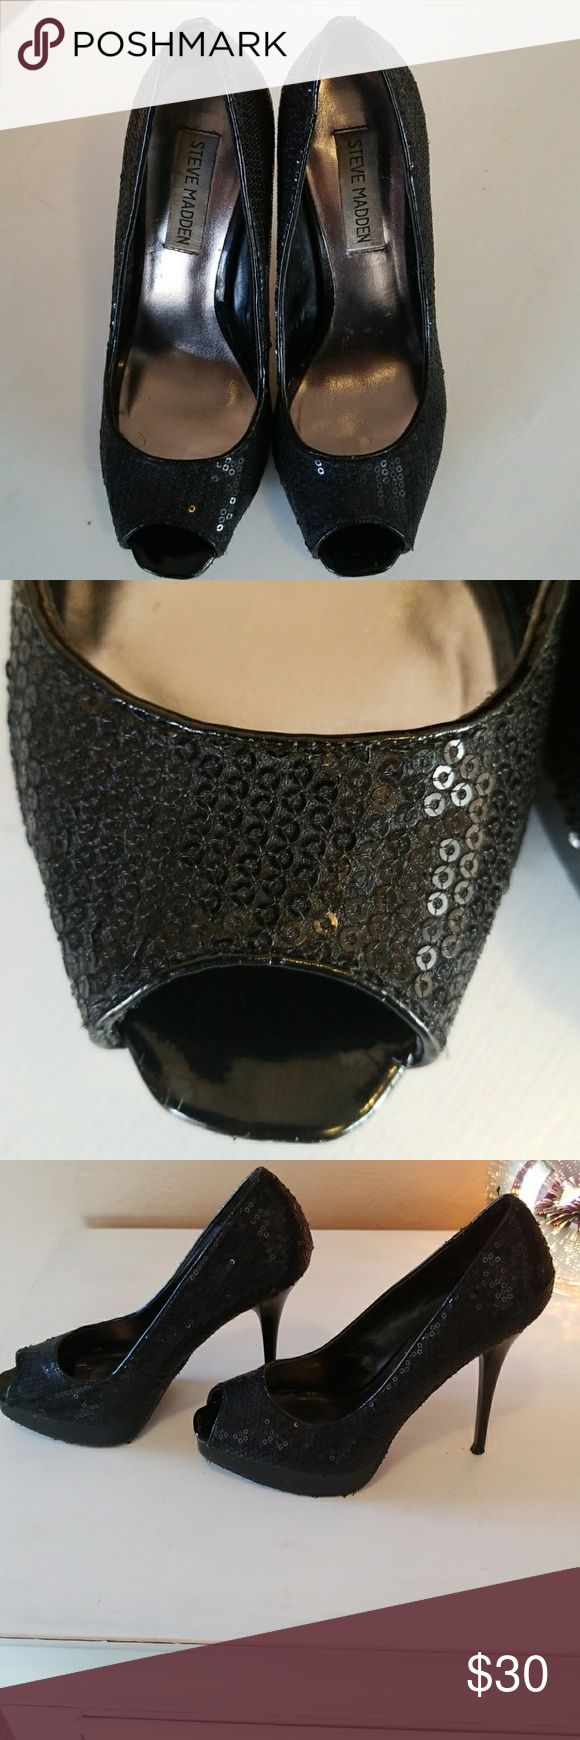 Steve Madden Sequins Black Heels Steve Madden Sequins Black Heels. The sizing has worn off but they fit like a 6.5 in womans They only show of wearing is the bottom of thw shoe as shown. Steve Madden Shoes Heels